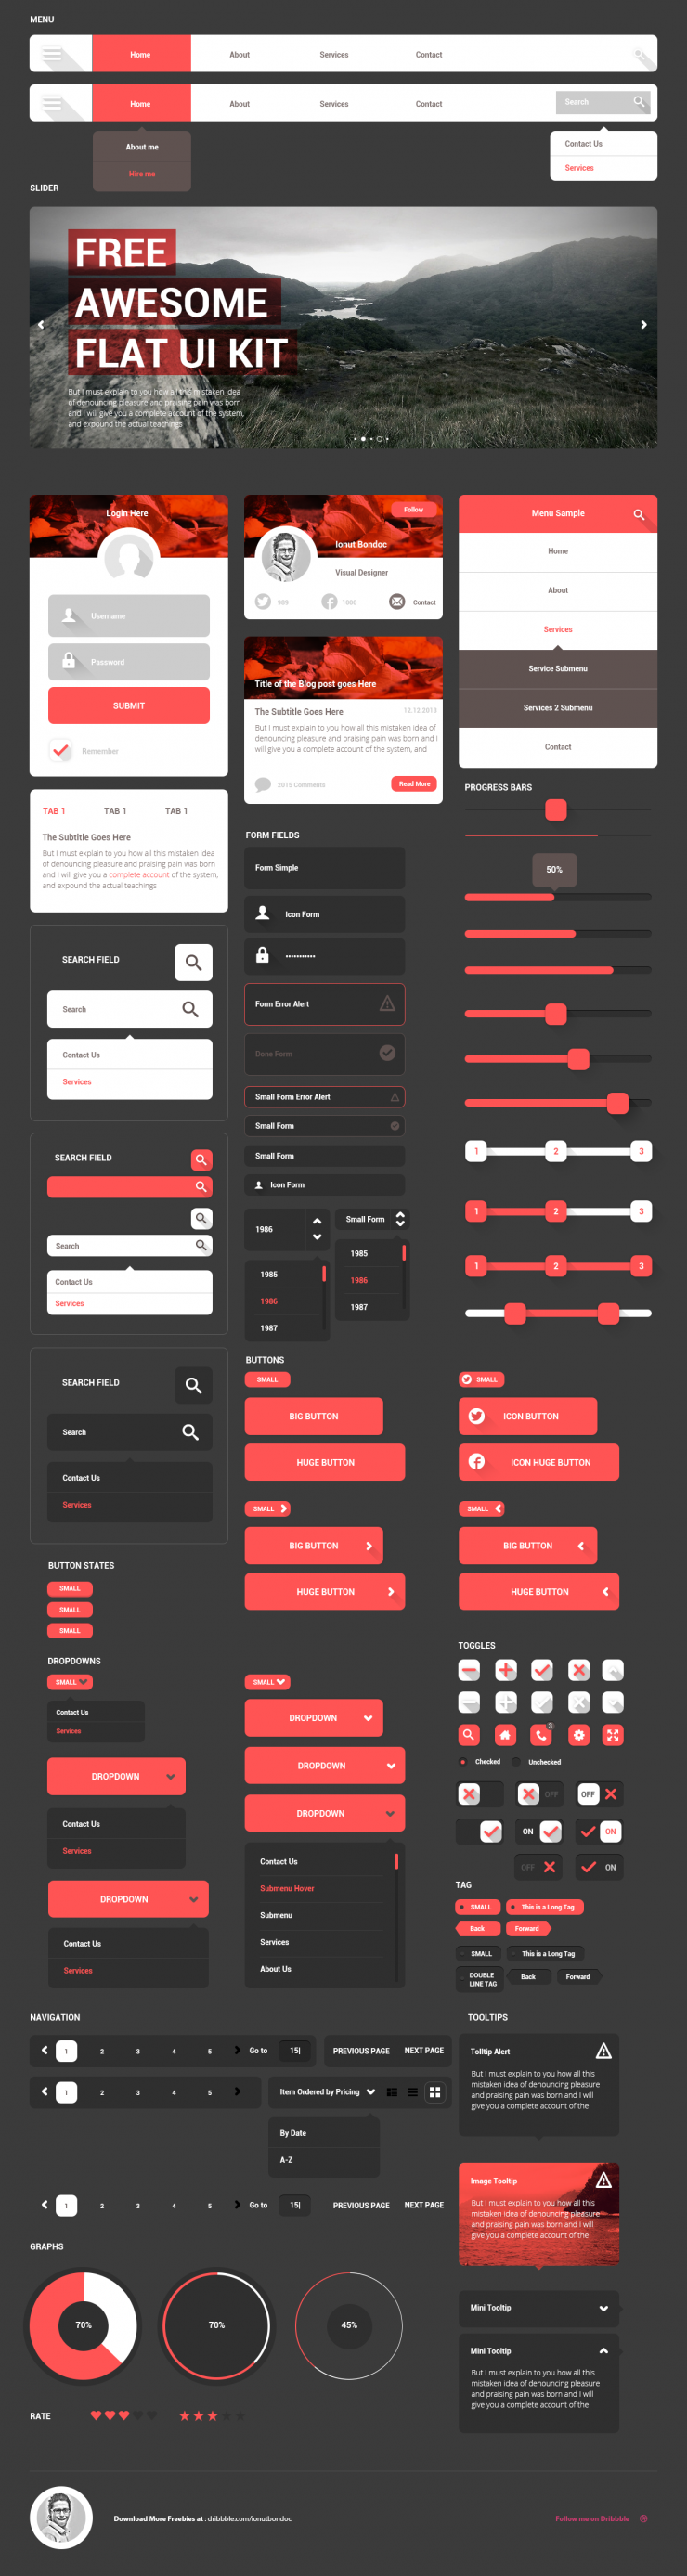 Awesome Flat UI Kit Freebie PSD website navigation, Web Resources, Web Menu, Web Elements, Web Design Elements, Web, user navigation, User Login, User Interface, ui set, ui kit, UI elements, UI, tooltips, tooltip, Tool Tip, toggle switch, toggle buttons, toggle, text/input fields, Tags, Switches, star rating, sorting, Social Media Icons, Social Media, Slider, Sign Up, Sign In, Search Bar, Search, Scrollbar, Resources, Rating Star, Rating, Radio Buttons, pagination, Navigation Bar, Navigation, navi bar, Navi, navbar, Menu, Login, Loading, Loader, Interface, Header, GUI Set, GUI kit, GUI, Graphical User Interface, flat ui psd, flat ui kit, flat ui, flat style, flat psd kit, flat psd, flat interface, flat gui, Flat Design, Flat, fav buttons, Error, dropdown, Drop Down Menu, Drop Down, Design Resources, Design Elements, Dark, Content Sliders, Comment Box, Clean, Check Boxes, Check Box, Check, Buttons, box banners, Bar, Badges,